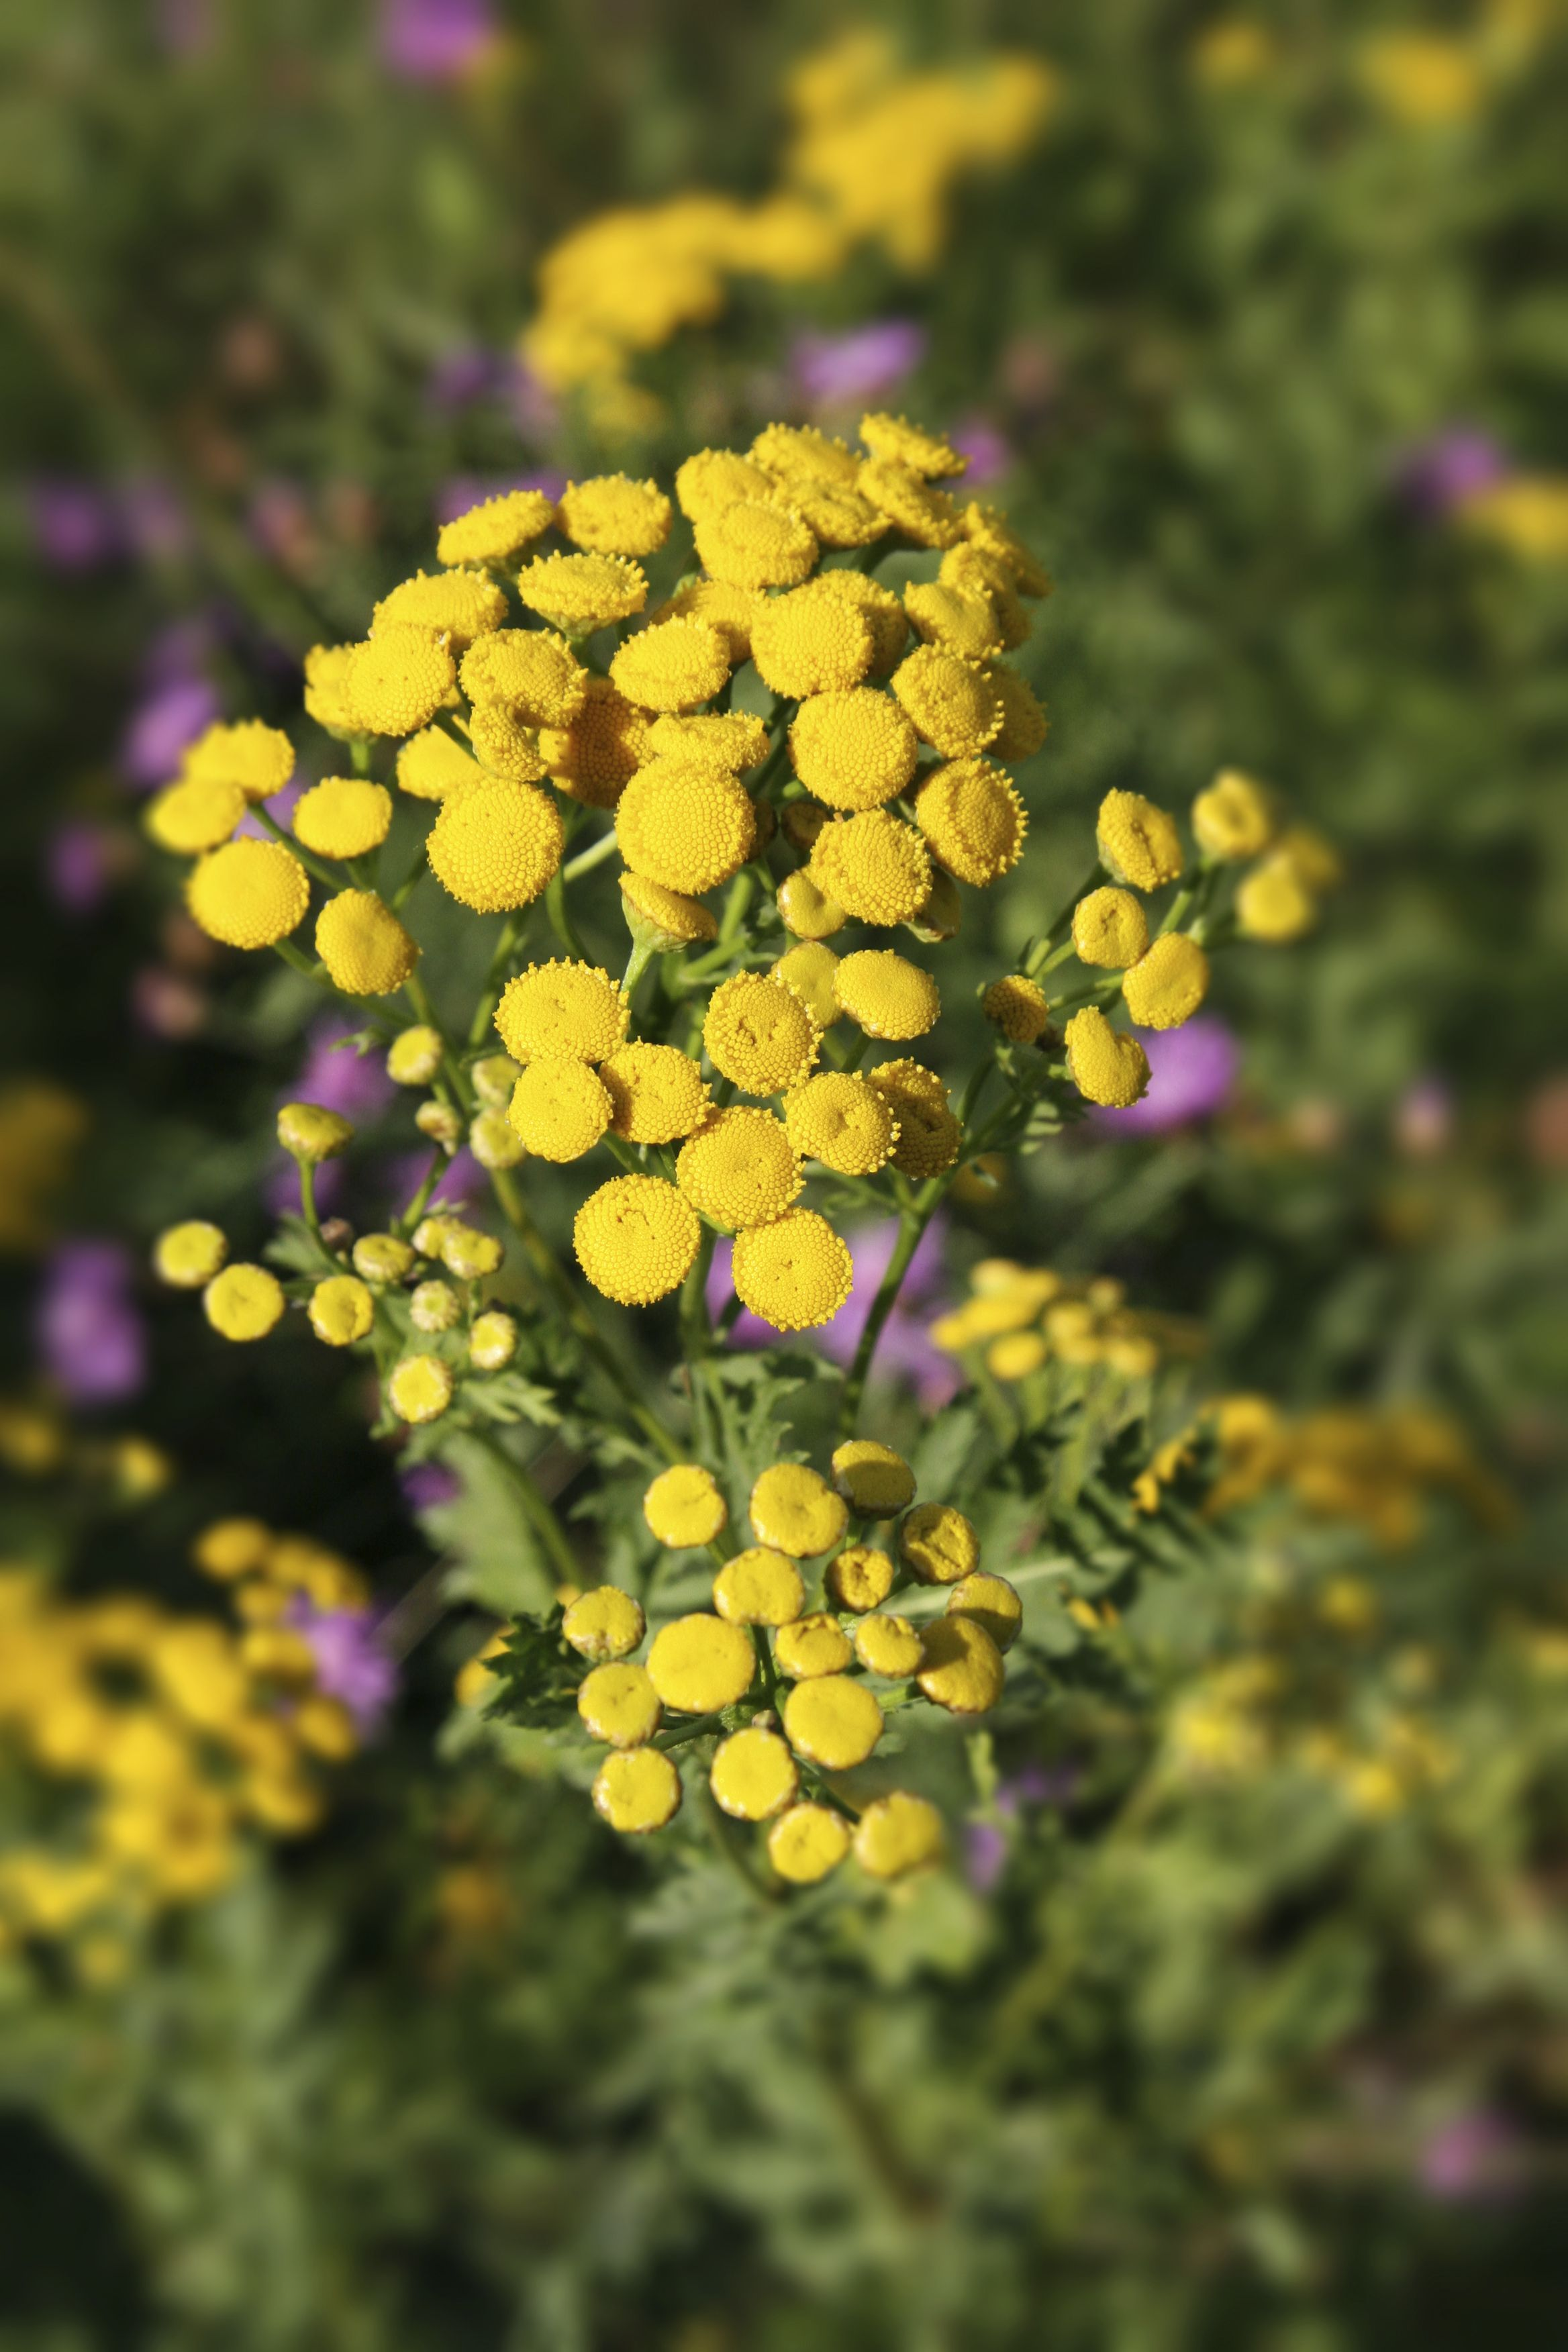 Tansy Or Bachelors Buttons To Give It Its Country Name Has Bright